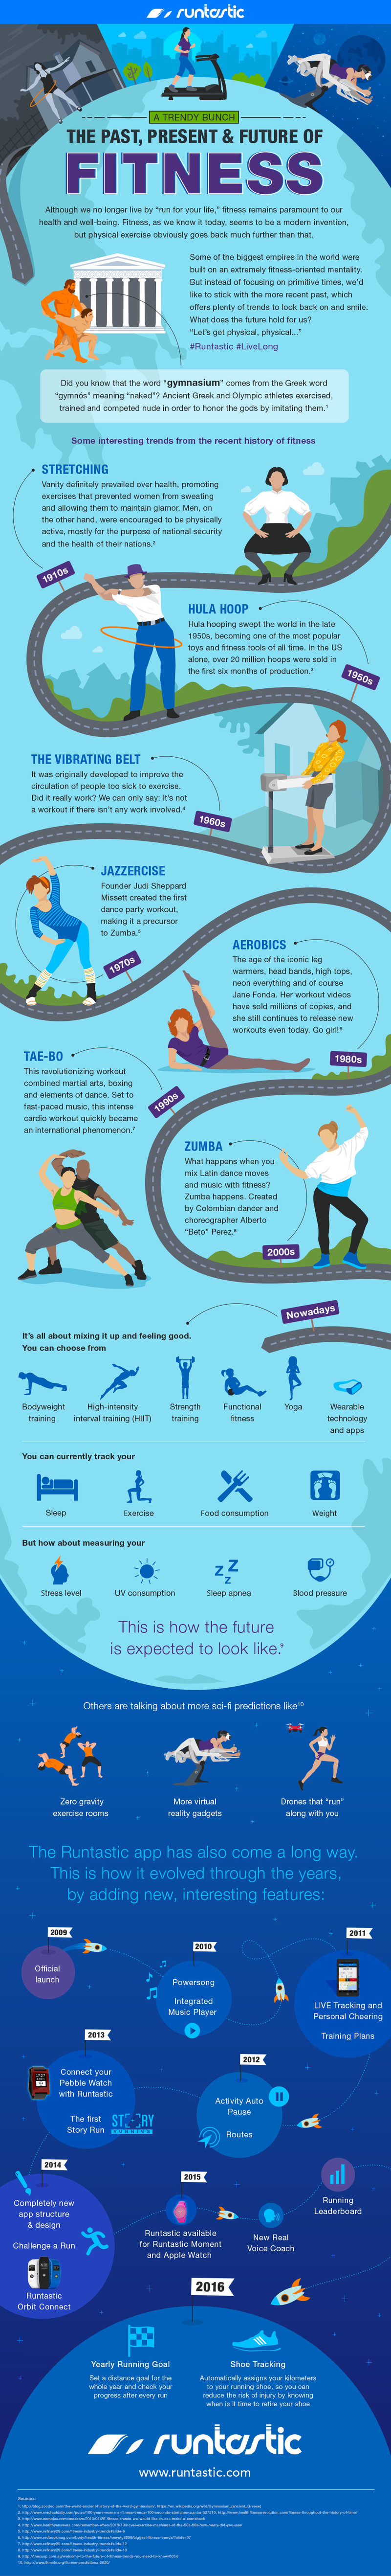 Fitness Training Then and Now: What Has Changed?